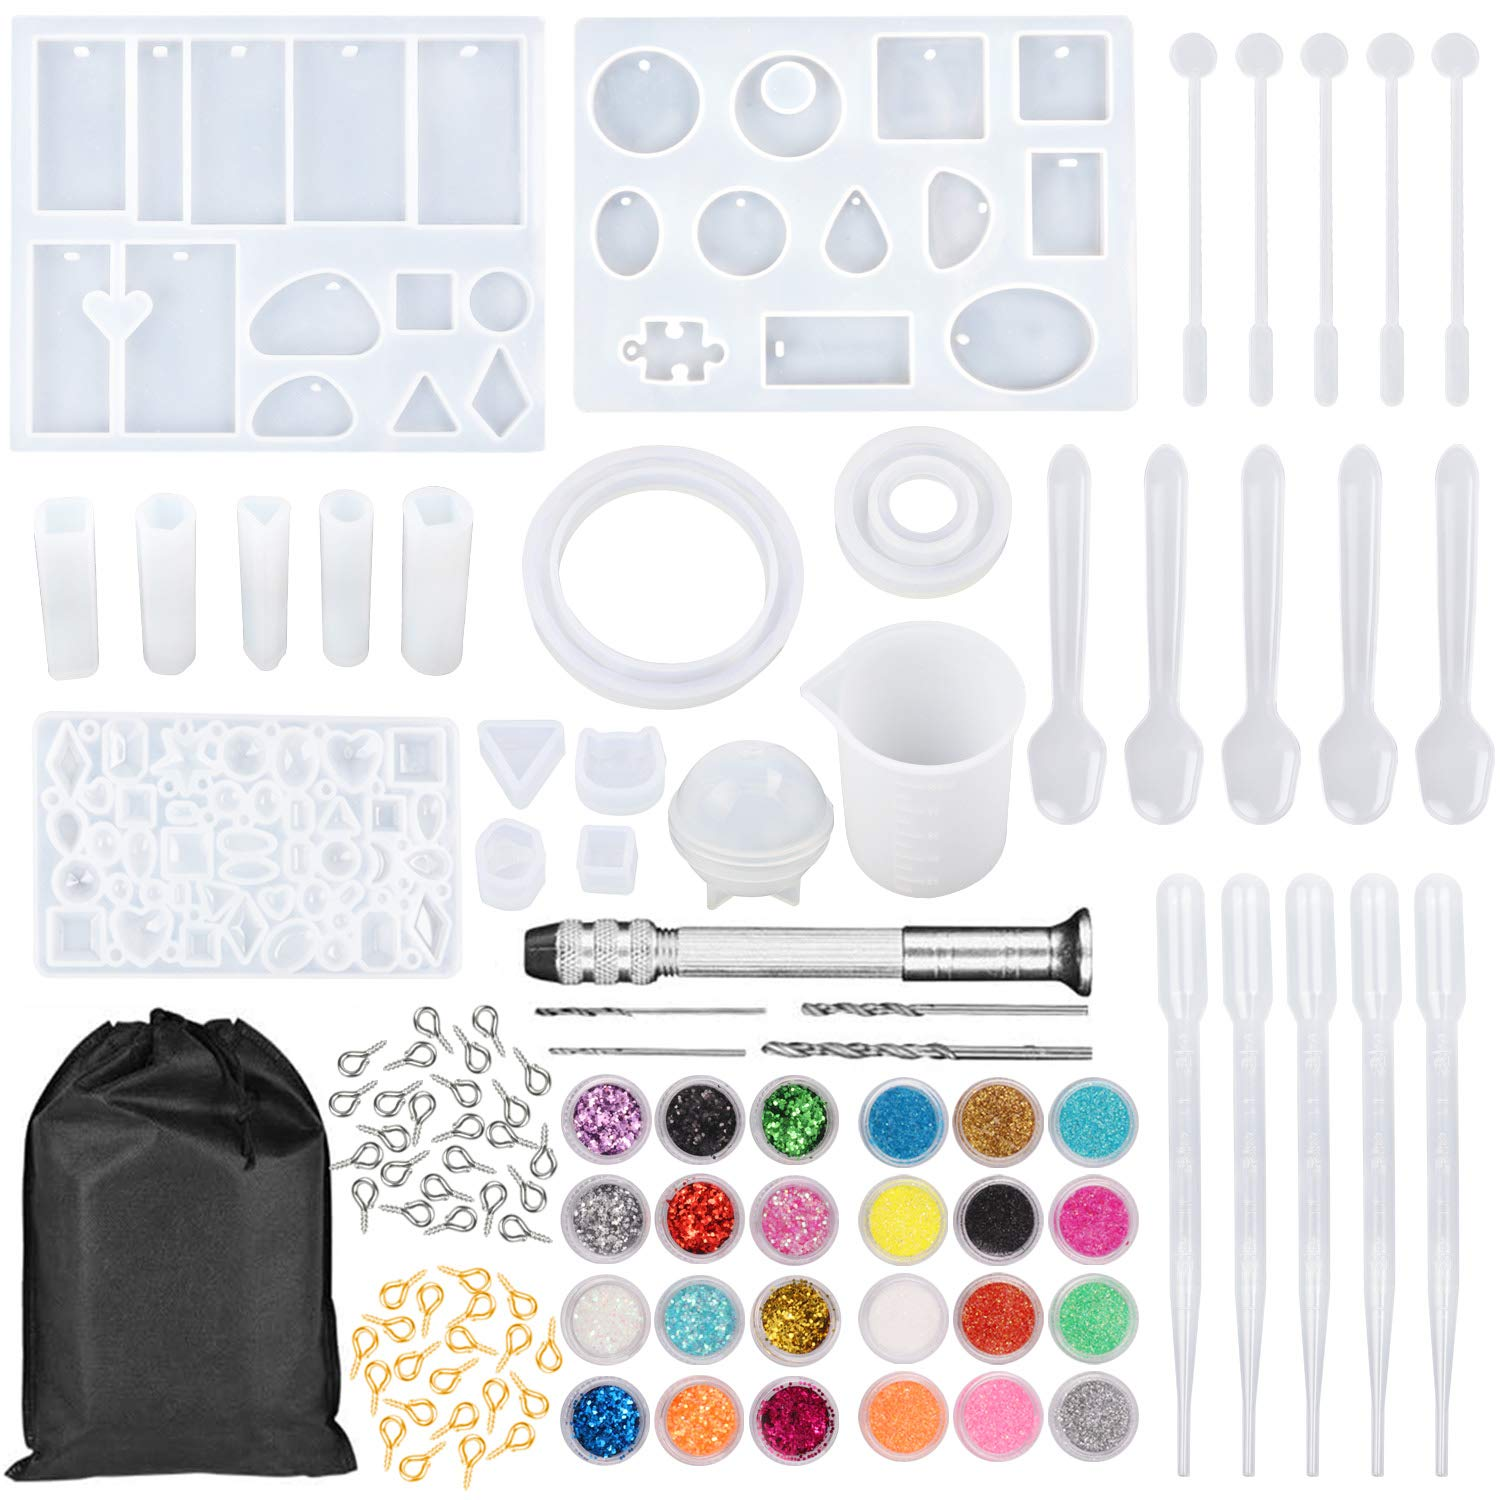 NANAPLUMS 159Pcs DIY Jewelry Resin Casting Molds and Tools Full Kit, Silicone Molds for DIY Jewelry Pendant Craft Making Set Contains Resin Molds, Glitter Powder, Glitter Sequins and Tools